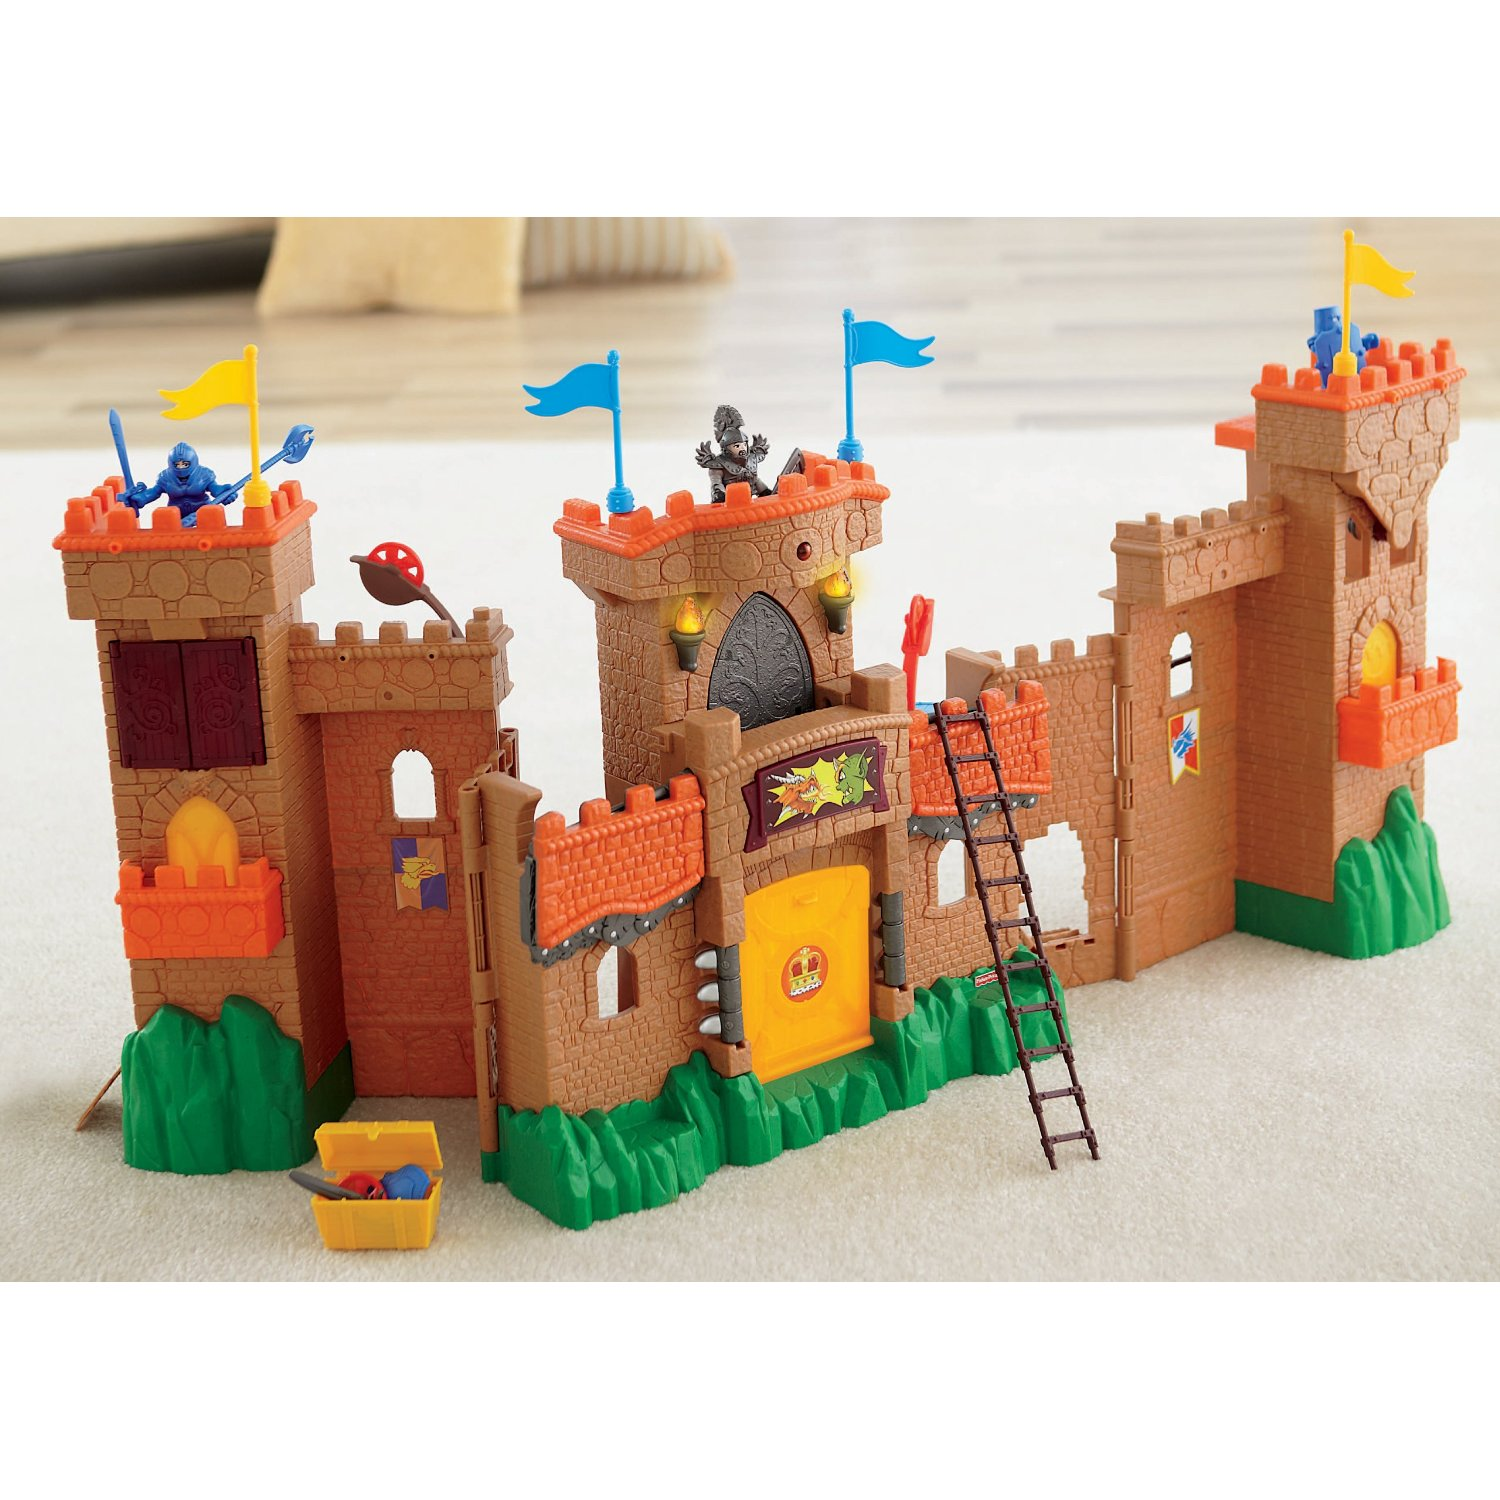 Imaginext Eagle Talon Castle Review And Giveaway Classy